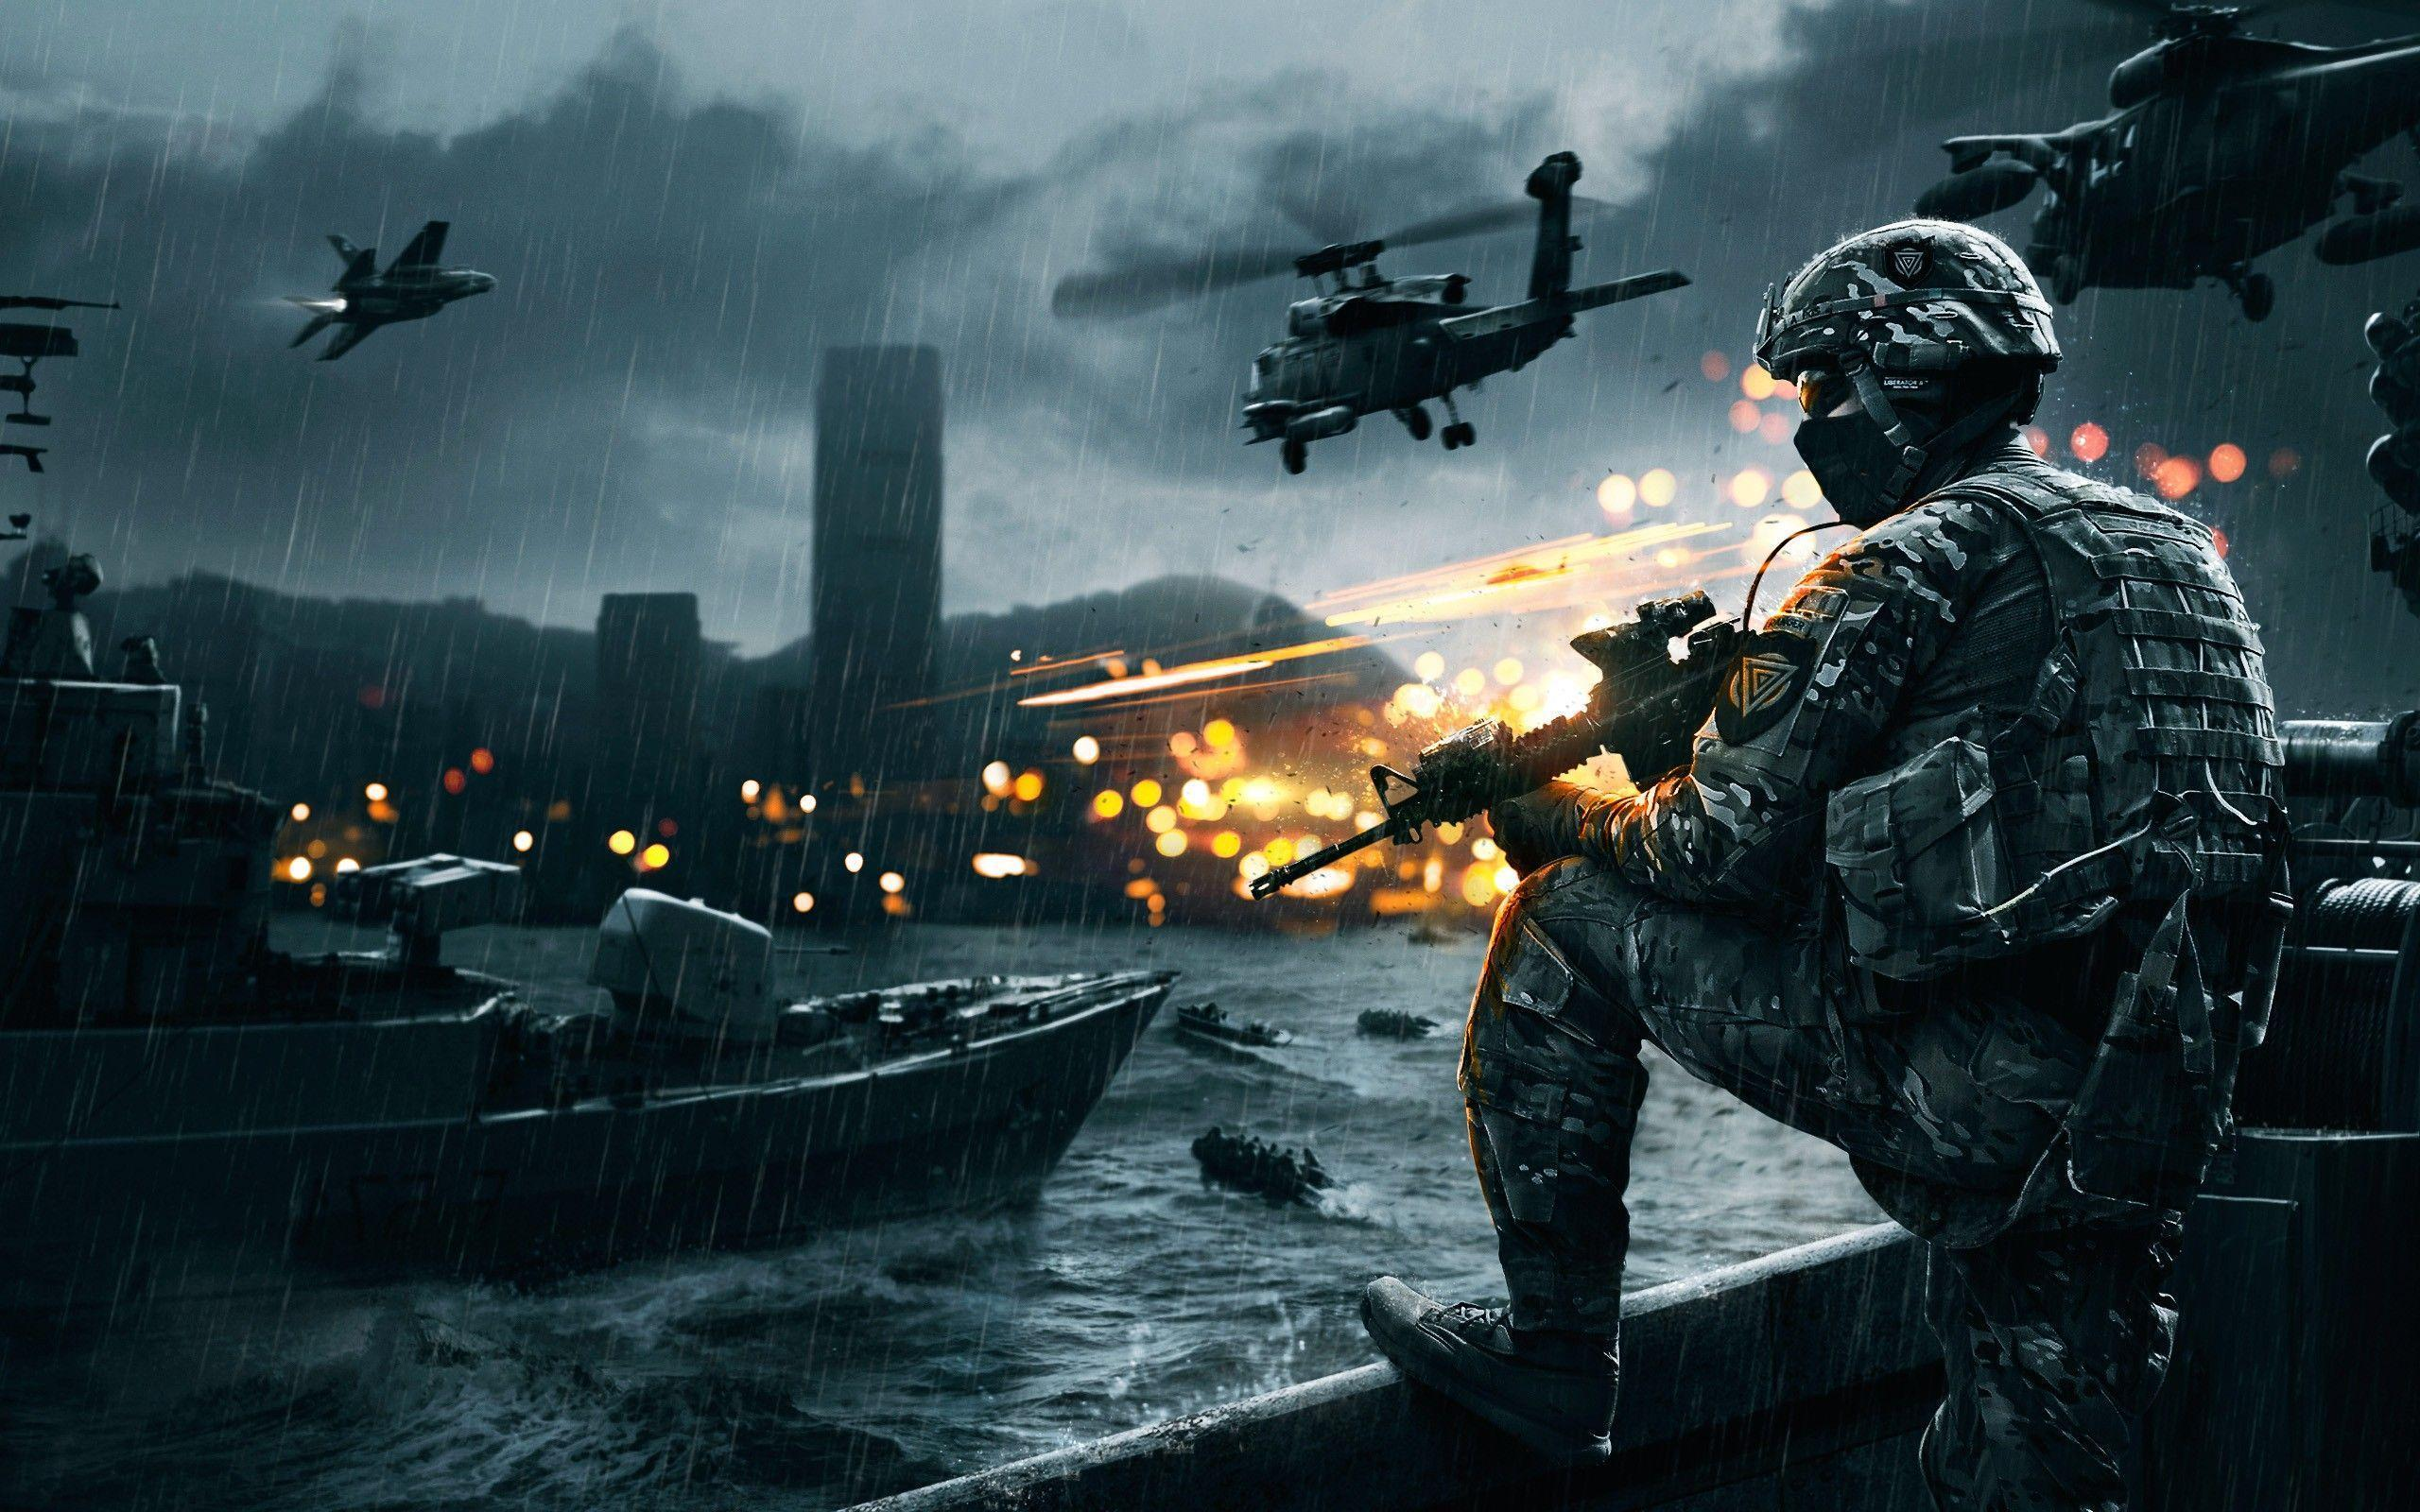 Battlefield 4 Wallpapers Wallpaper Cave